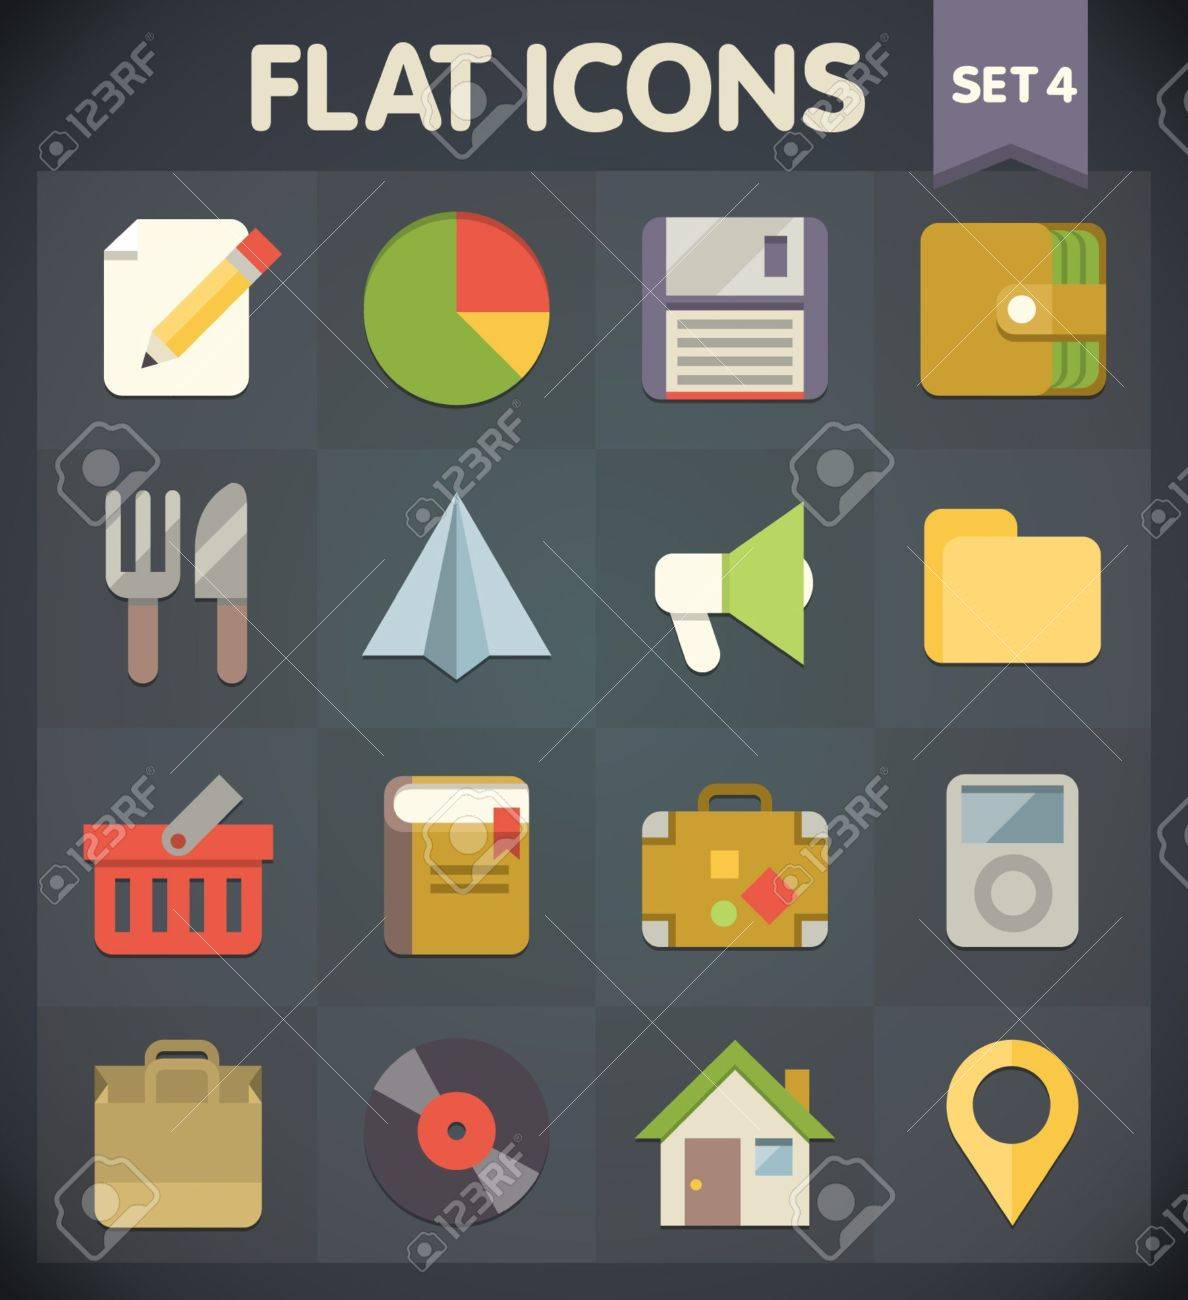 Universal Flat Icons for Web and Mobile Applications Set Stock Vector - 19508145